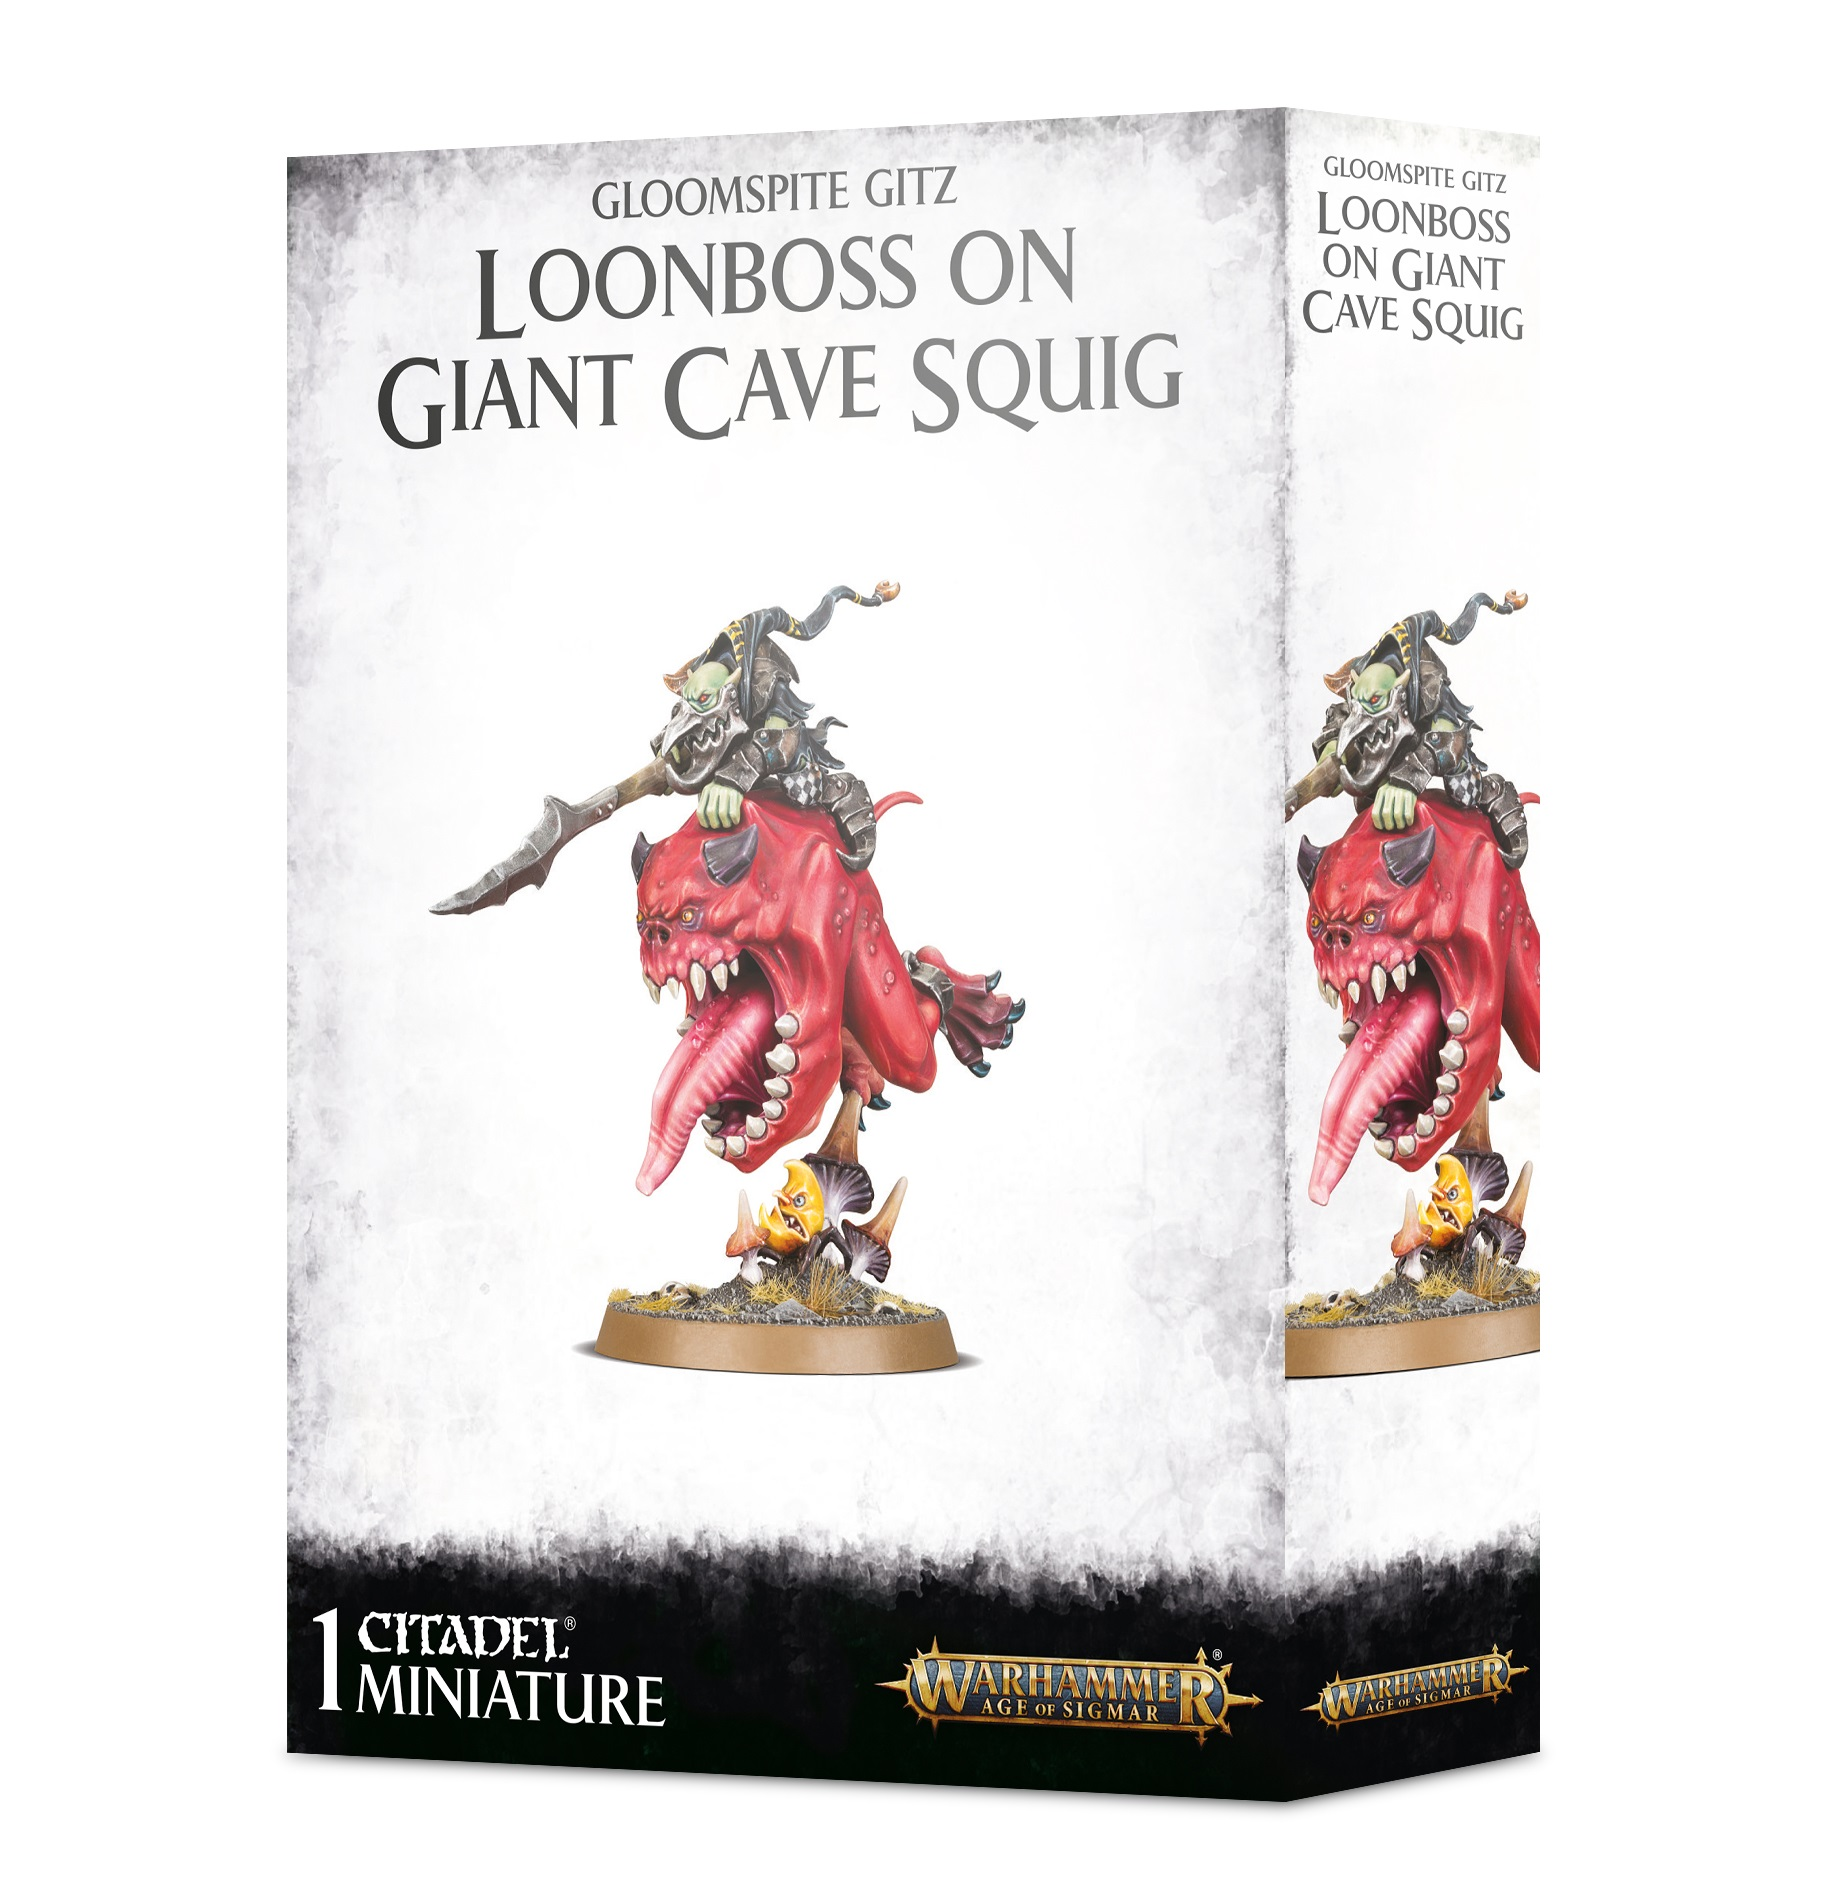 Loonboss on Giant Cave Squig